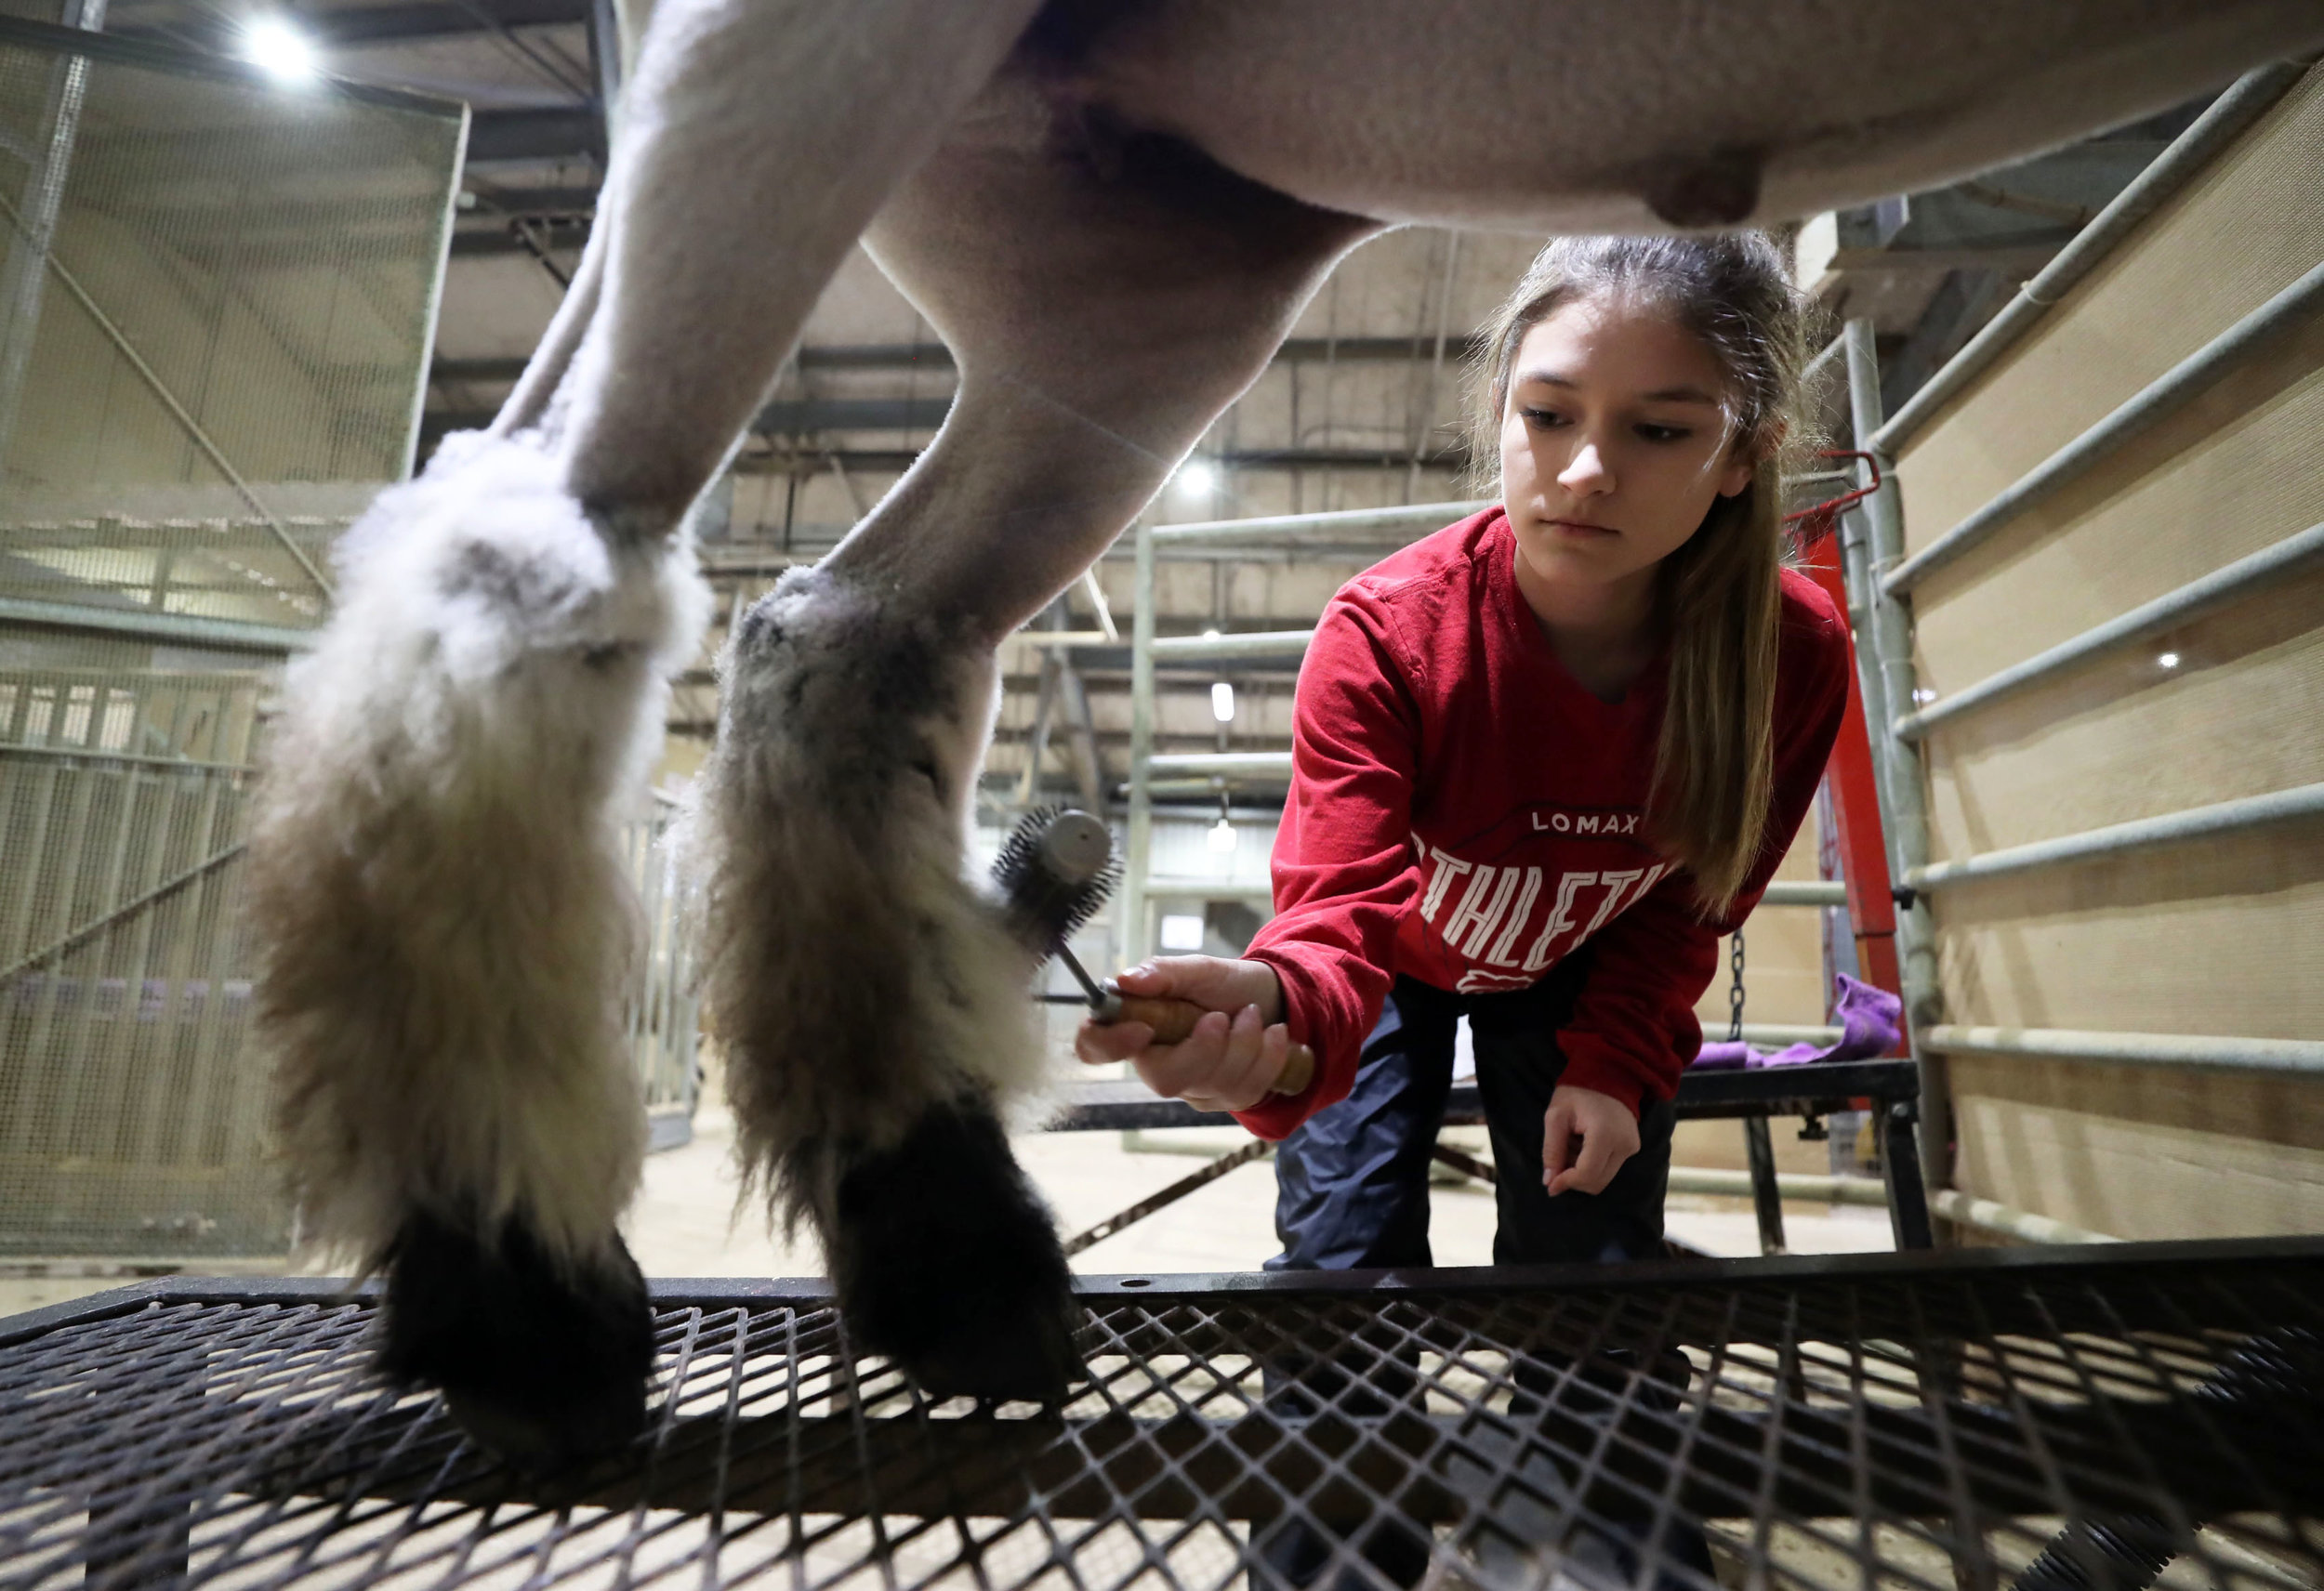 Morgan Perez brushes her lamb, Vader's wool to detangle any knots at the Dickinson Agriculture Science Facility on Tuesday, Feb. 26, 2019. Perez must keep Vader's wool under wrap, because Vader will pick the hair off when he's alone.